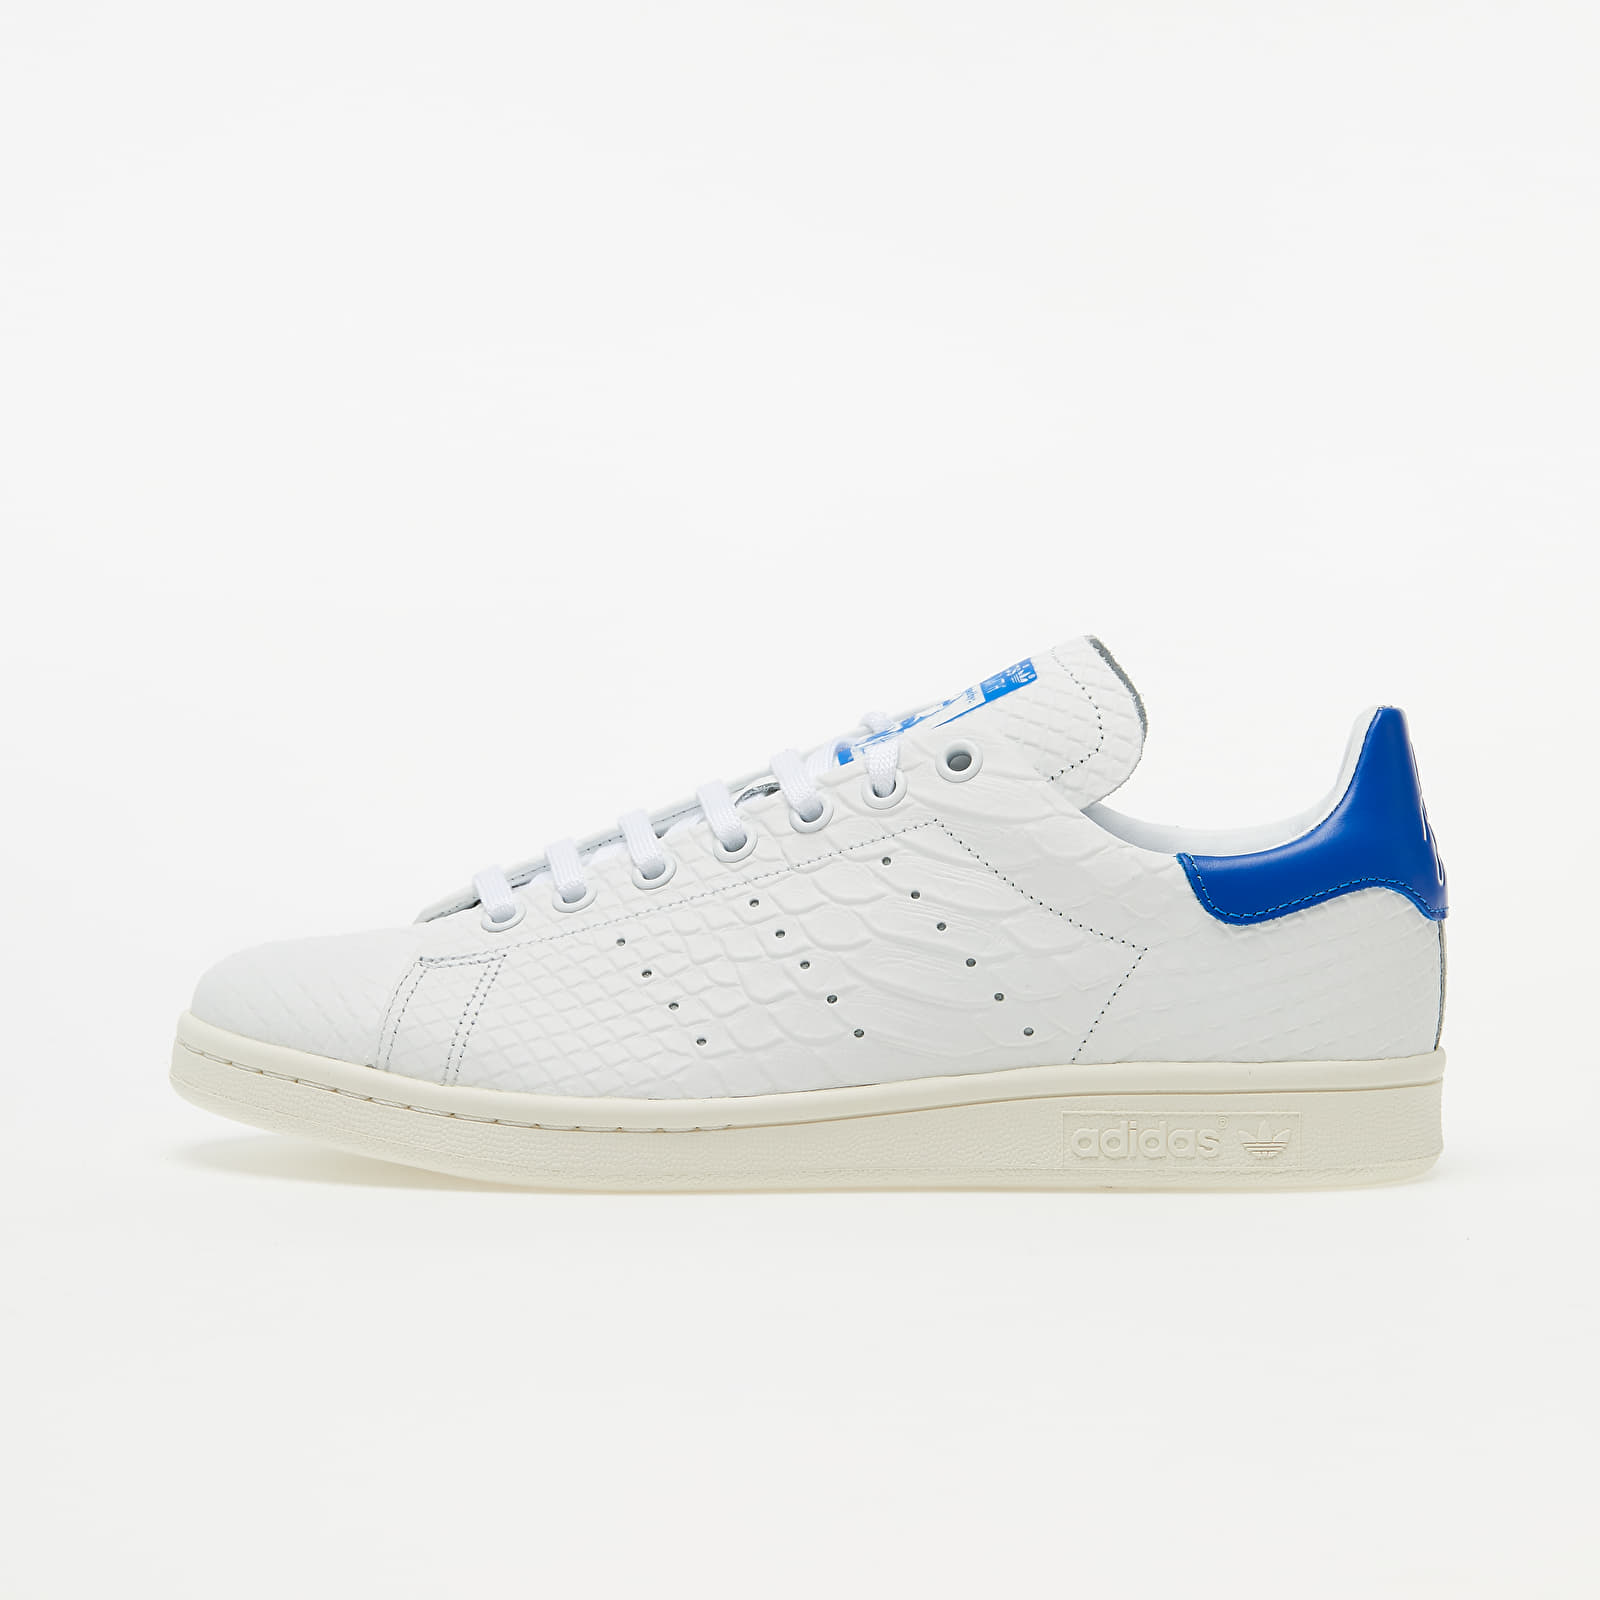 adidas Stan Smith Recon Ftw White/...